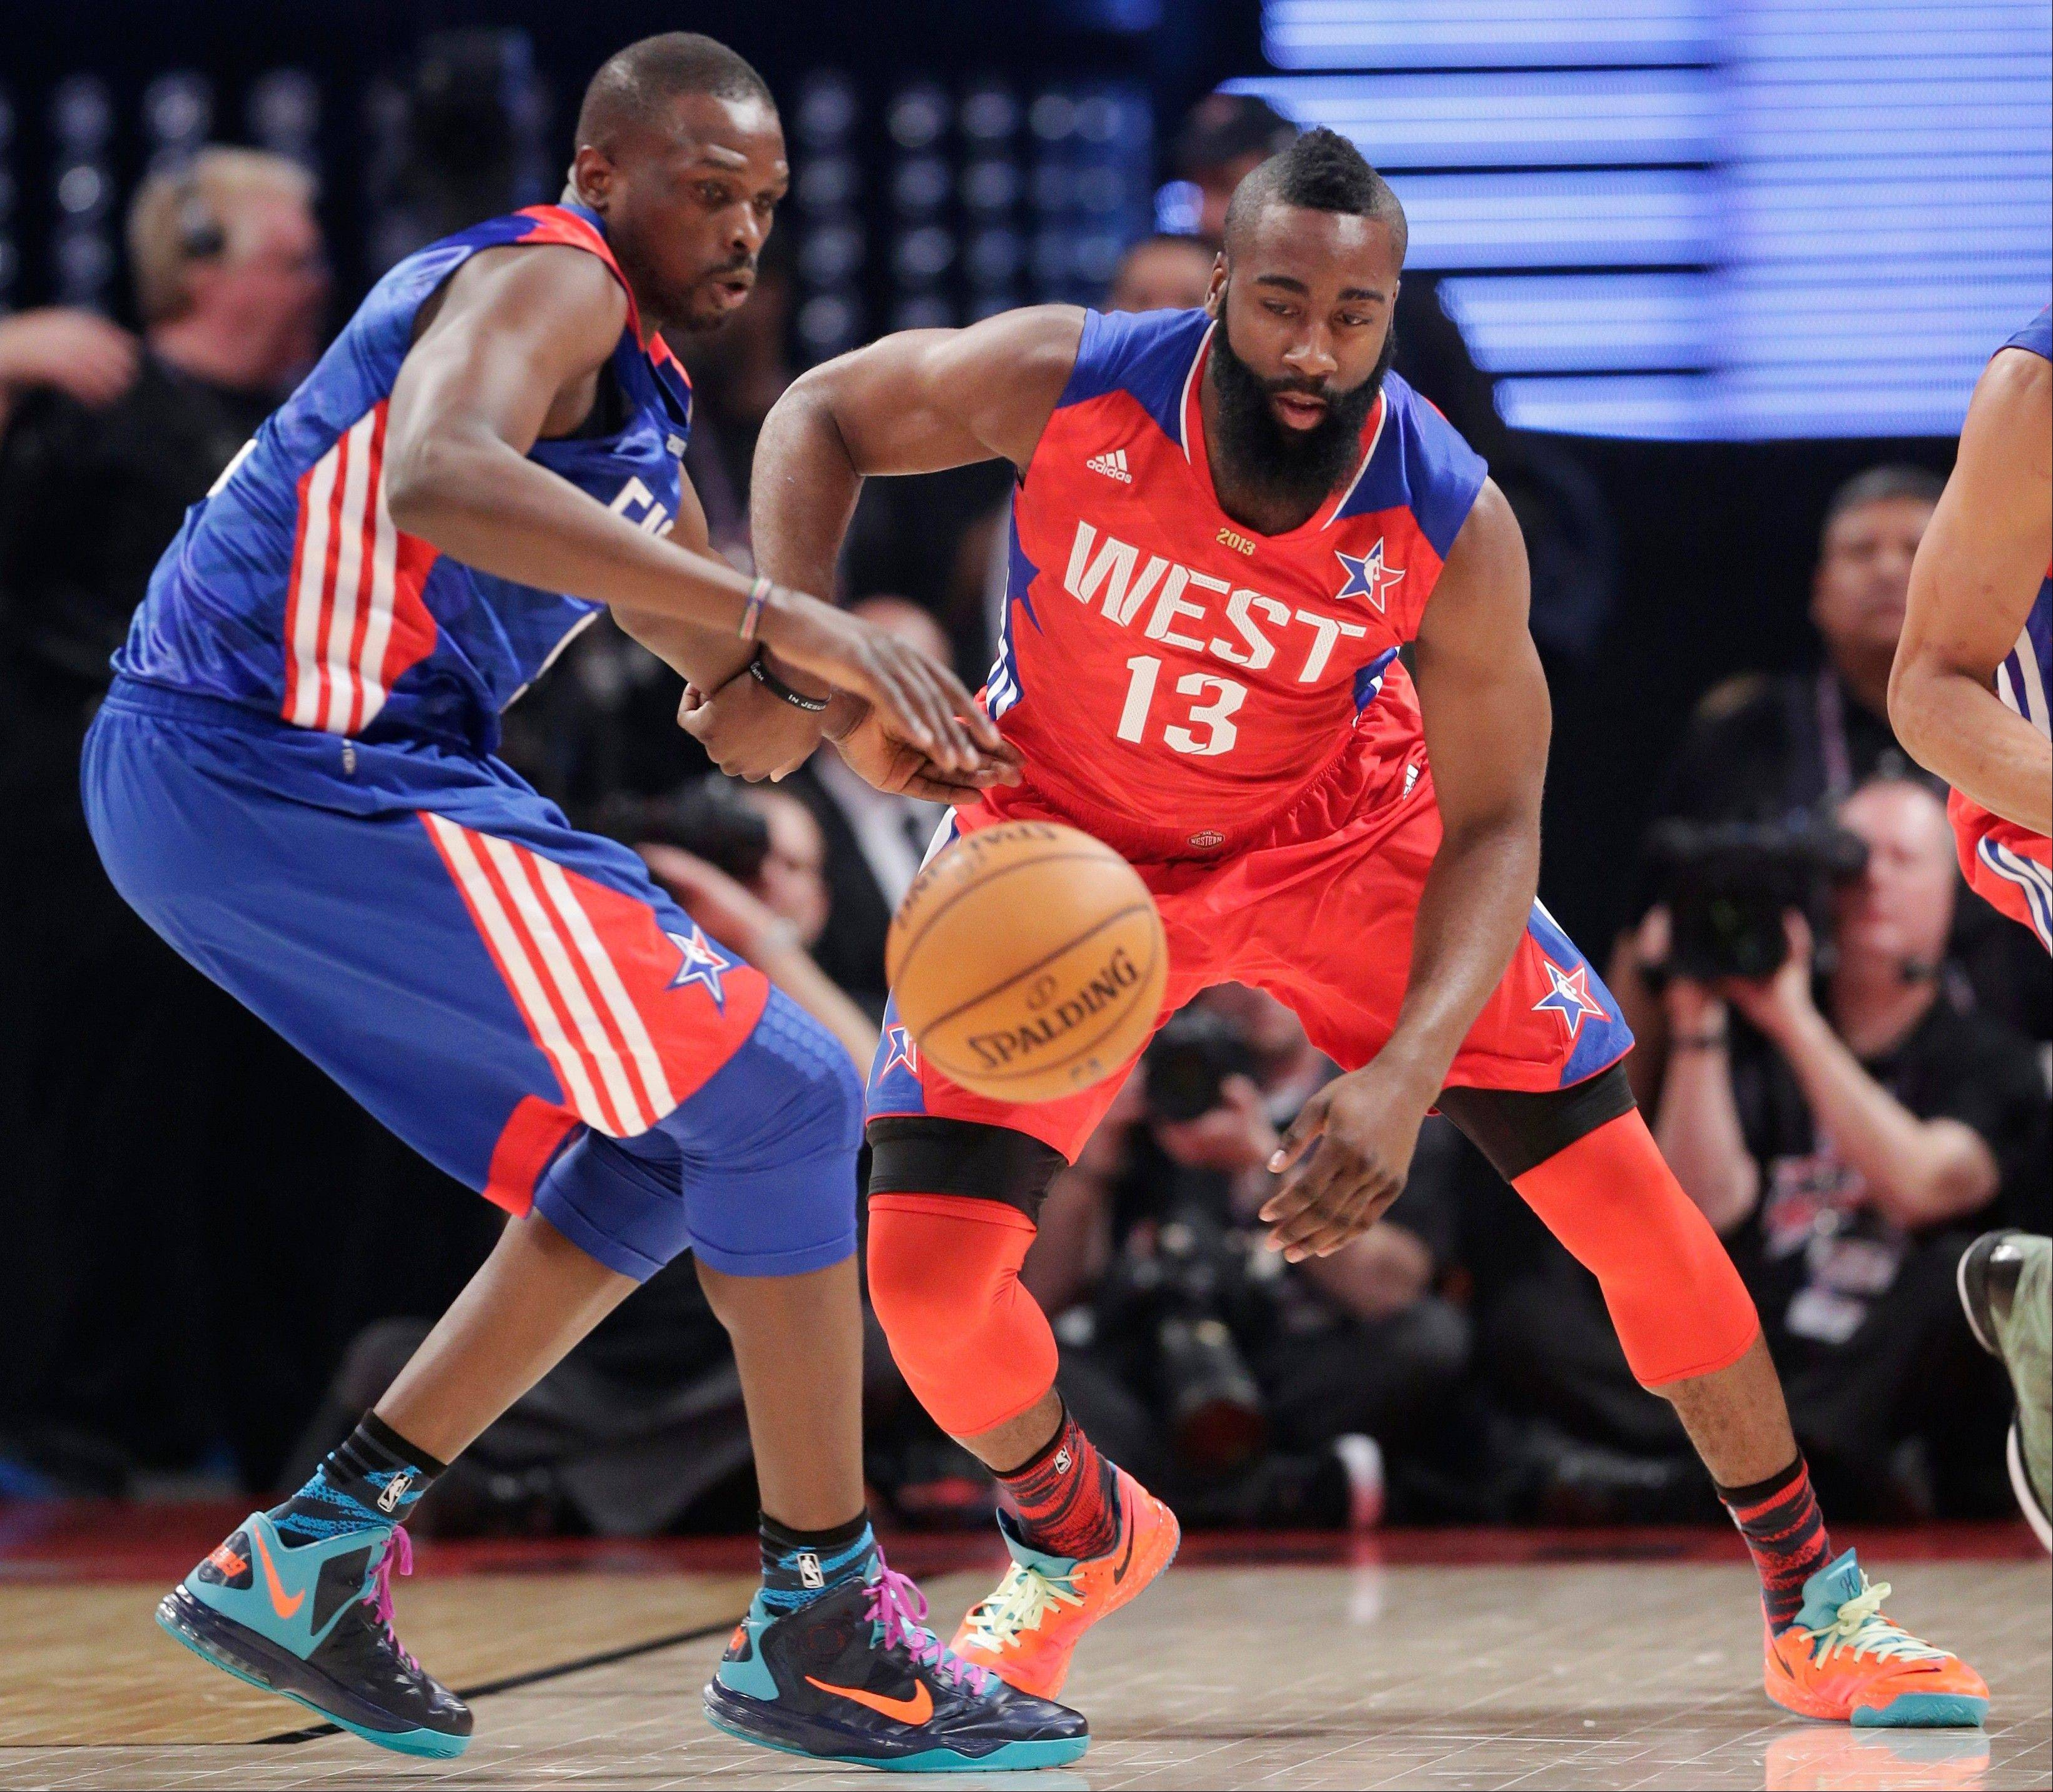 East Team's Luol Deng from Great Britain of the Chicago Bulls, left, and West Team's James Harden of the Houston Rockets go after a loose ball during the first half of the NBA All-Star basketball game Sunday in Houston.